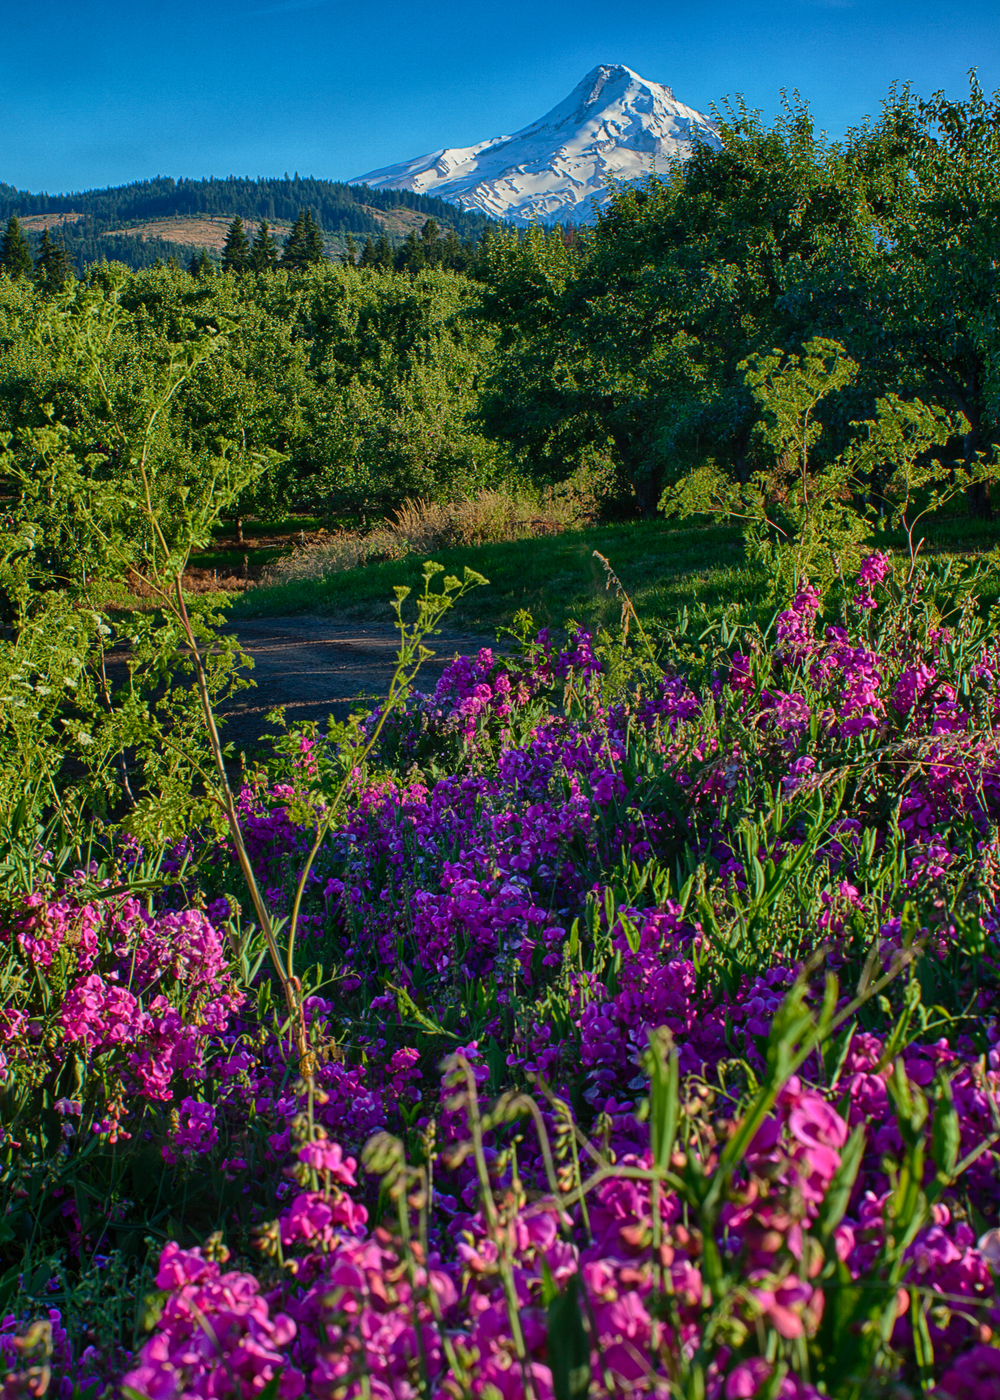 Wild flowers, with Mount Hood in the background.